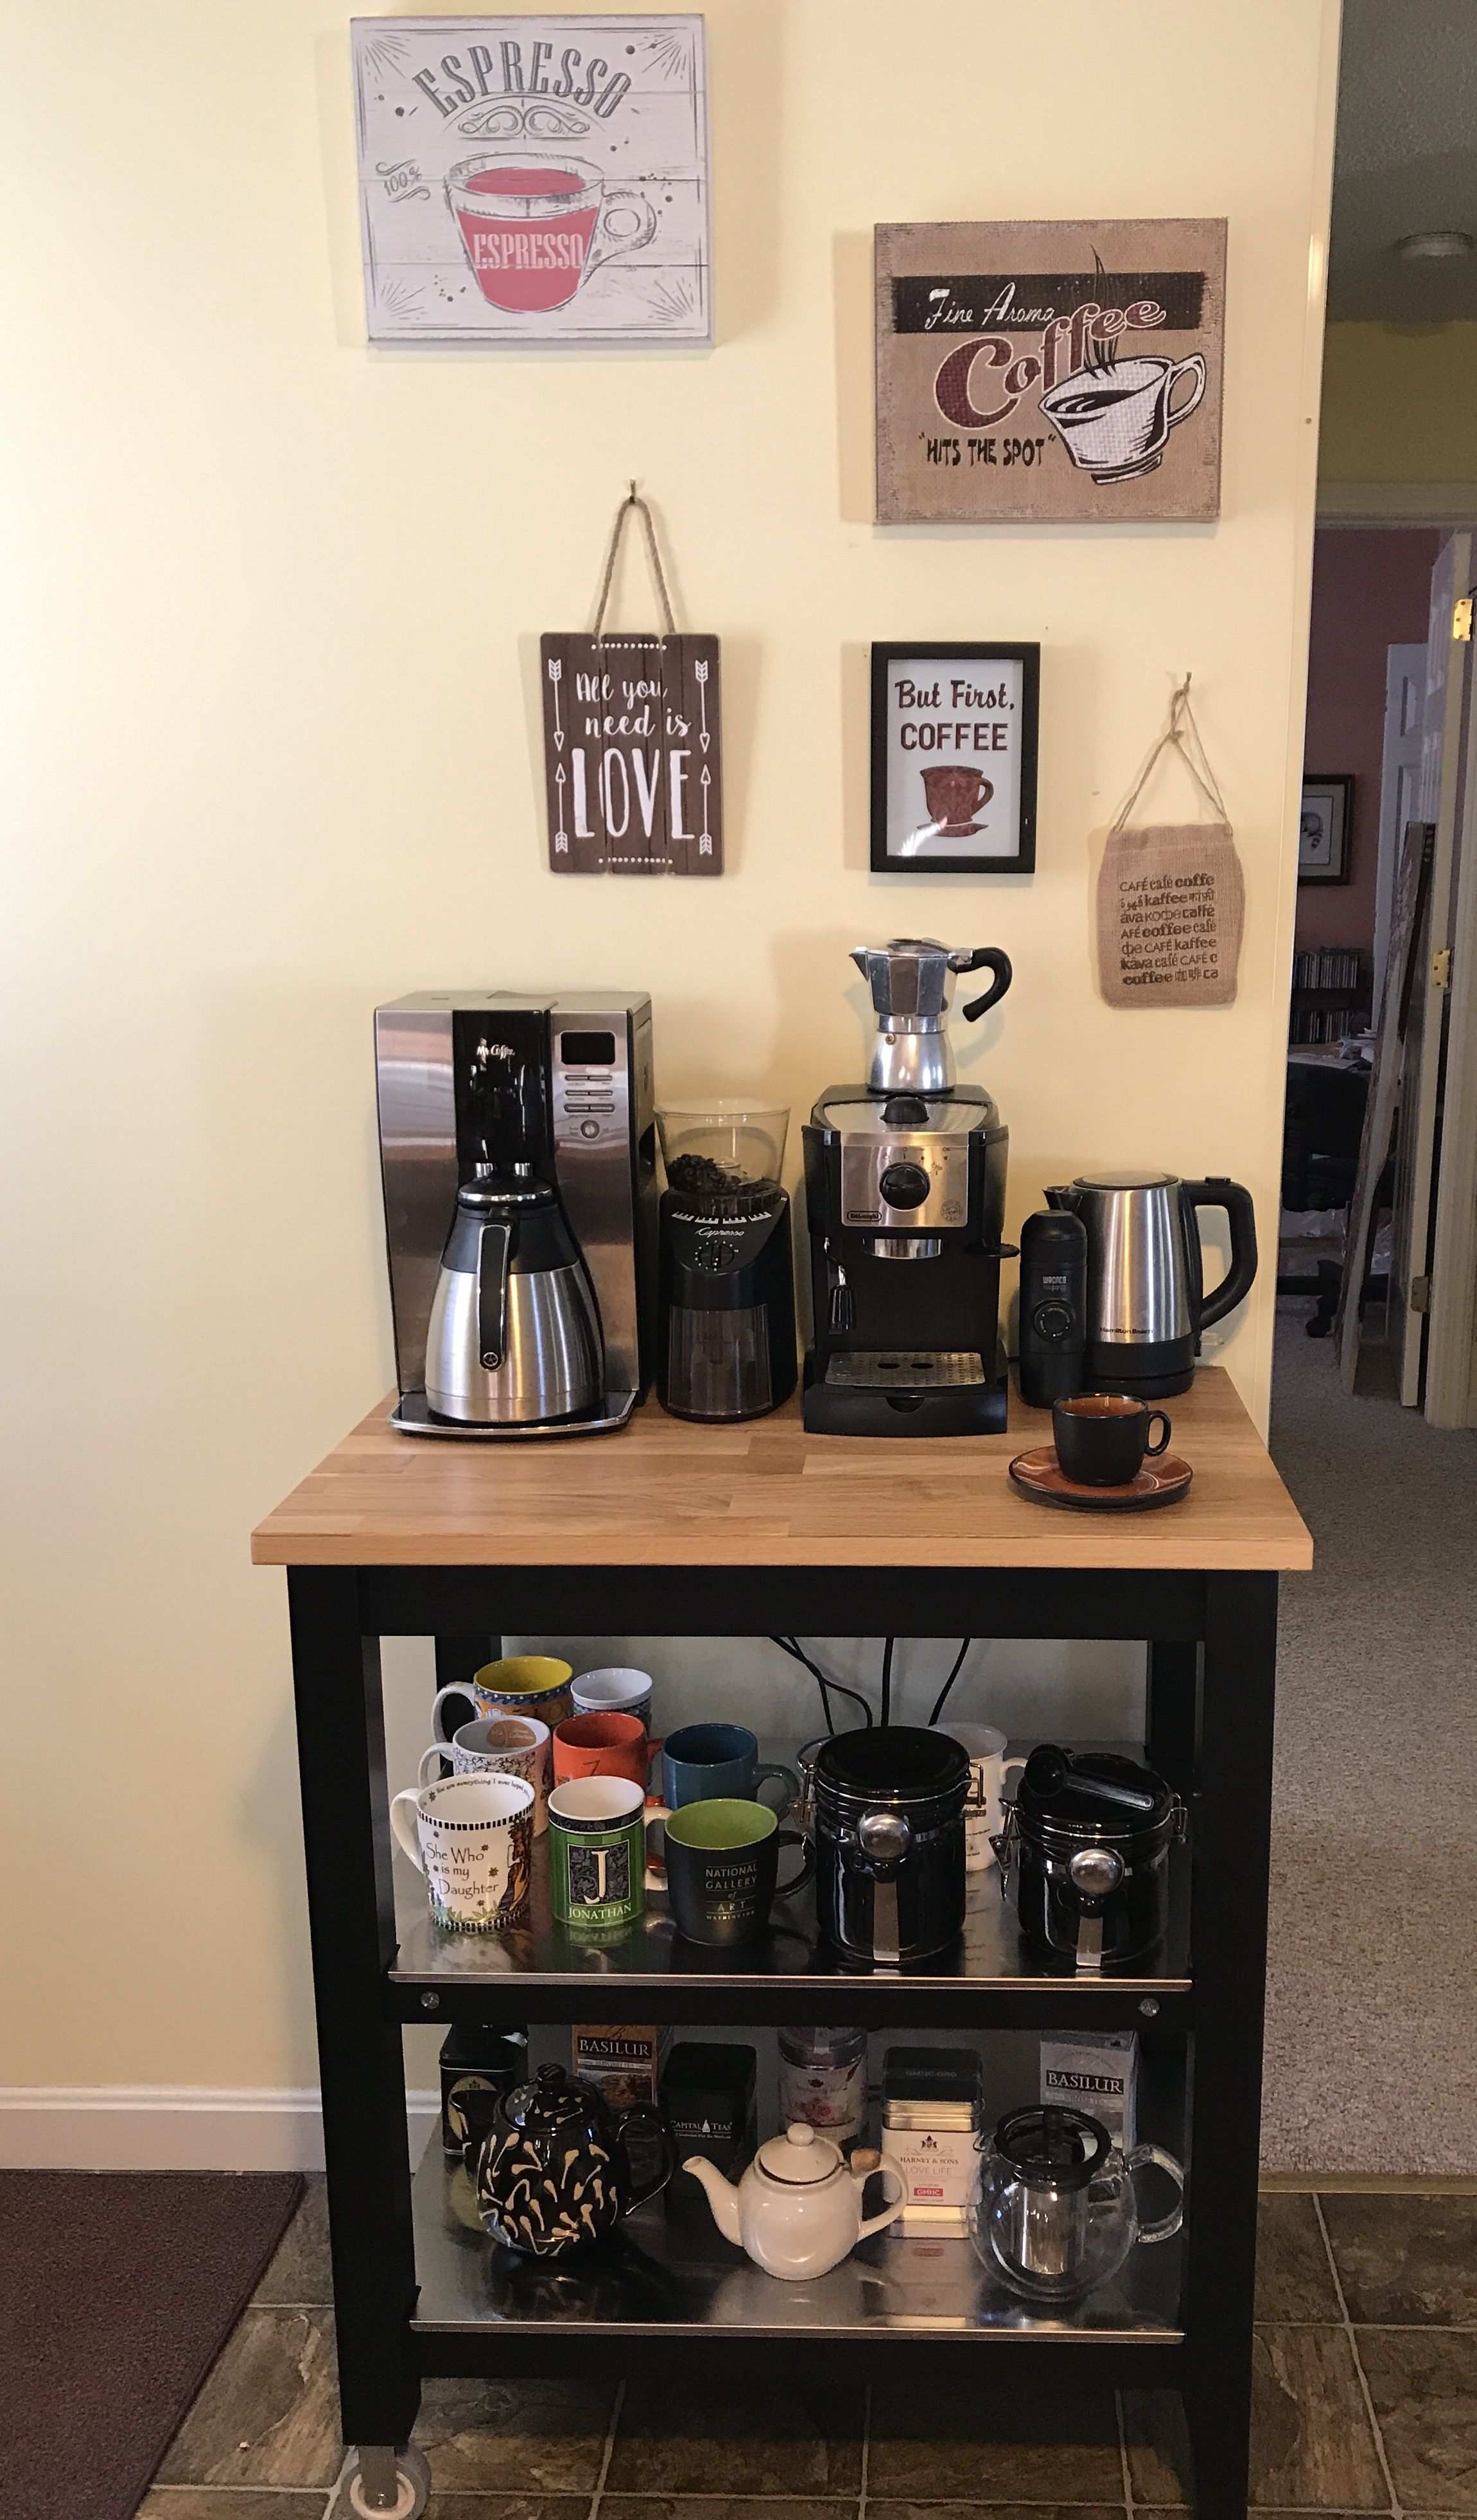 20 diy coffee station ideas for your mood buzz how to make your own coffee shop coffee. Black Bedroom Furniture Sets. Home Design Ideas